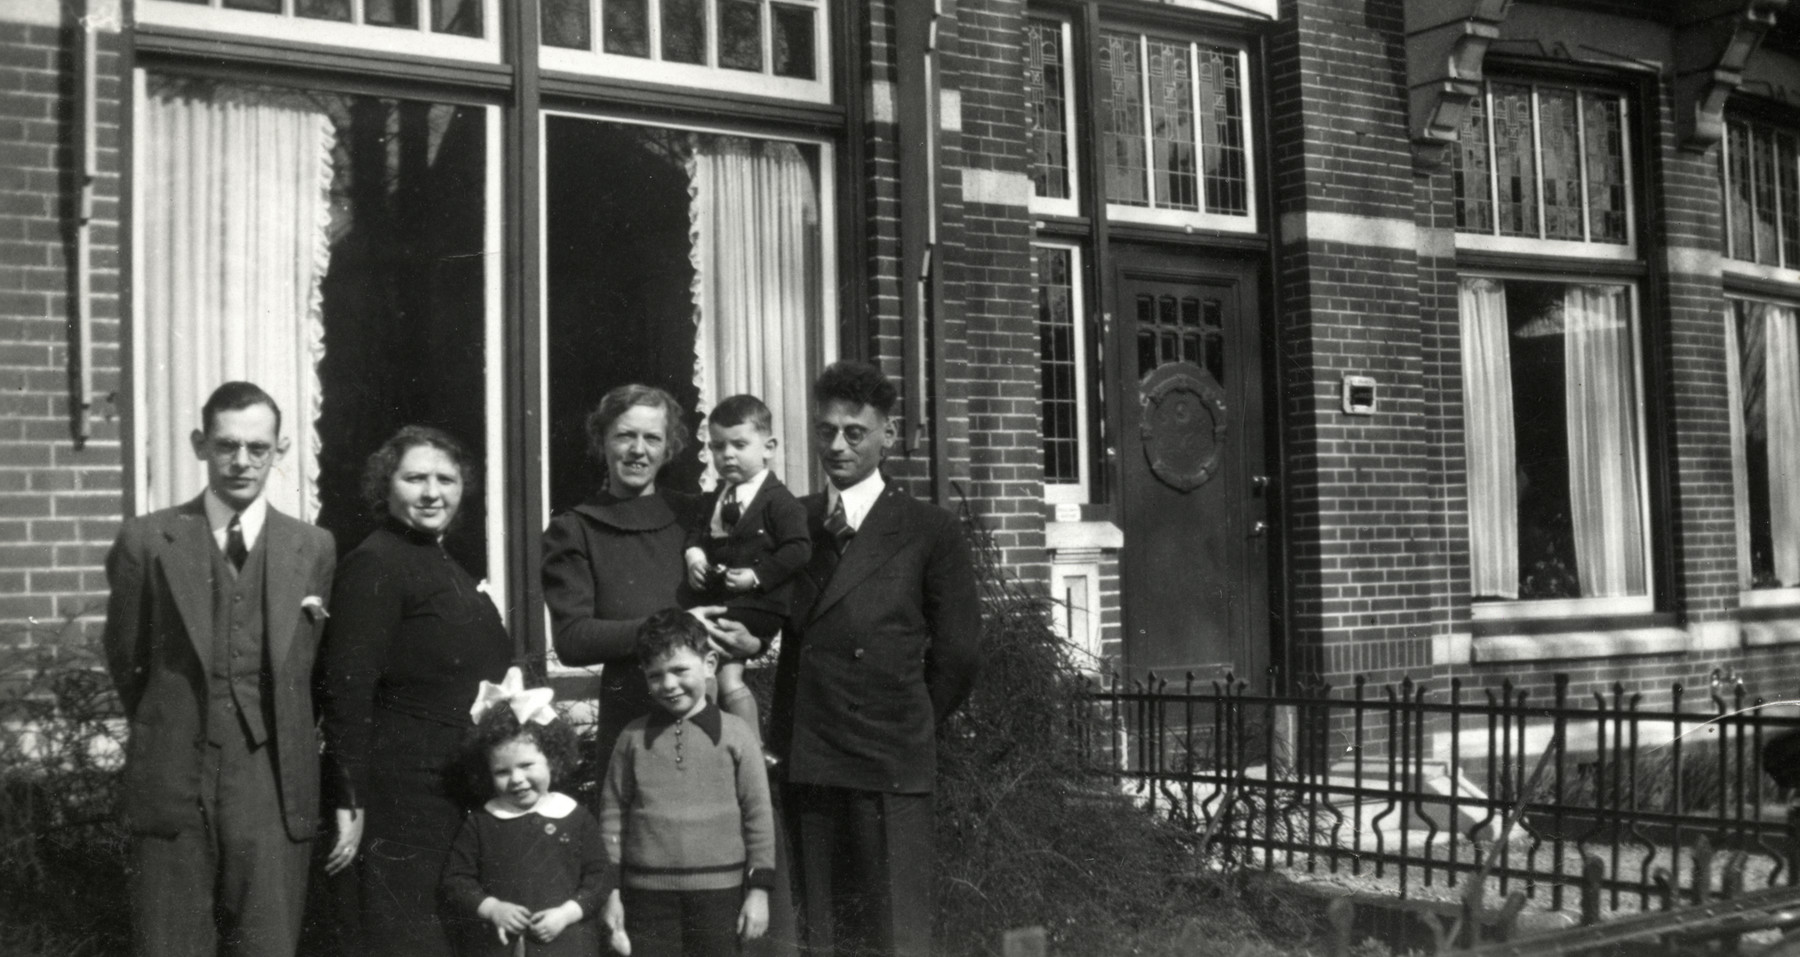 The Drukker family poses outside its home in Winschoten.  Pictured in front are Elly and Alfred Drukker.  Behind them from lef tto right are unidentified, Erna Drukker,  Stein holding a child and Maurits Drukker.